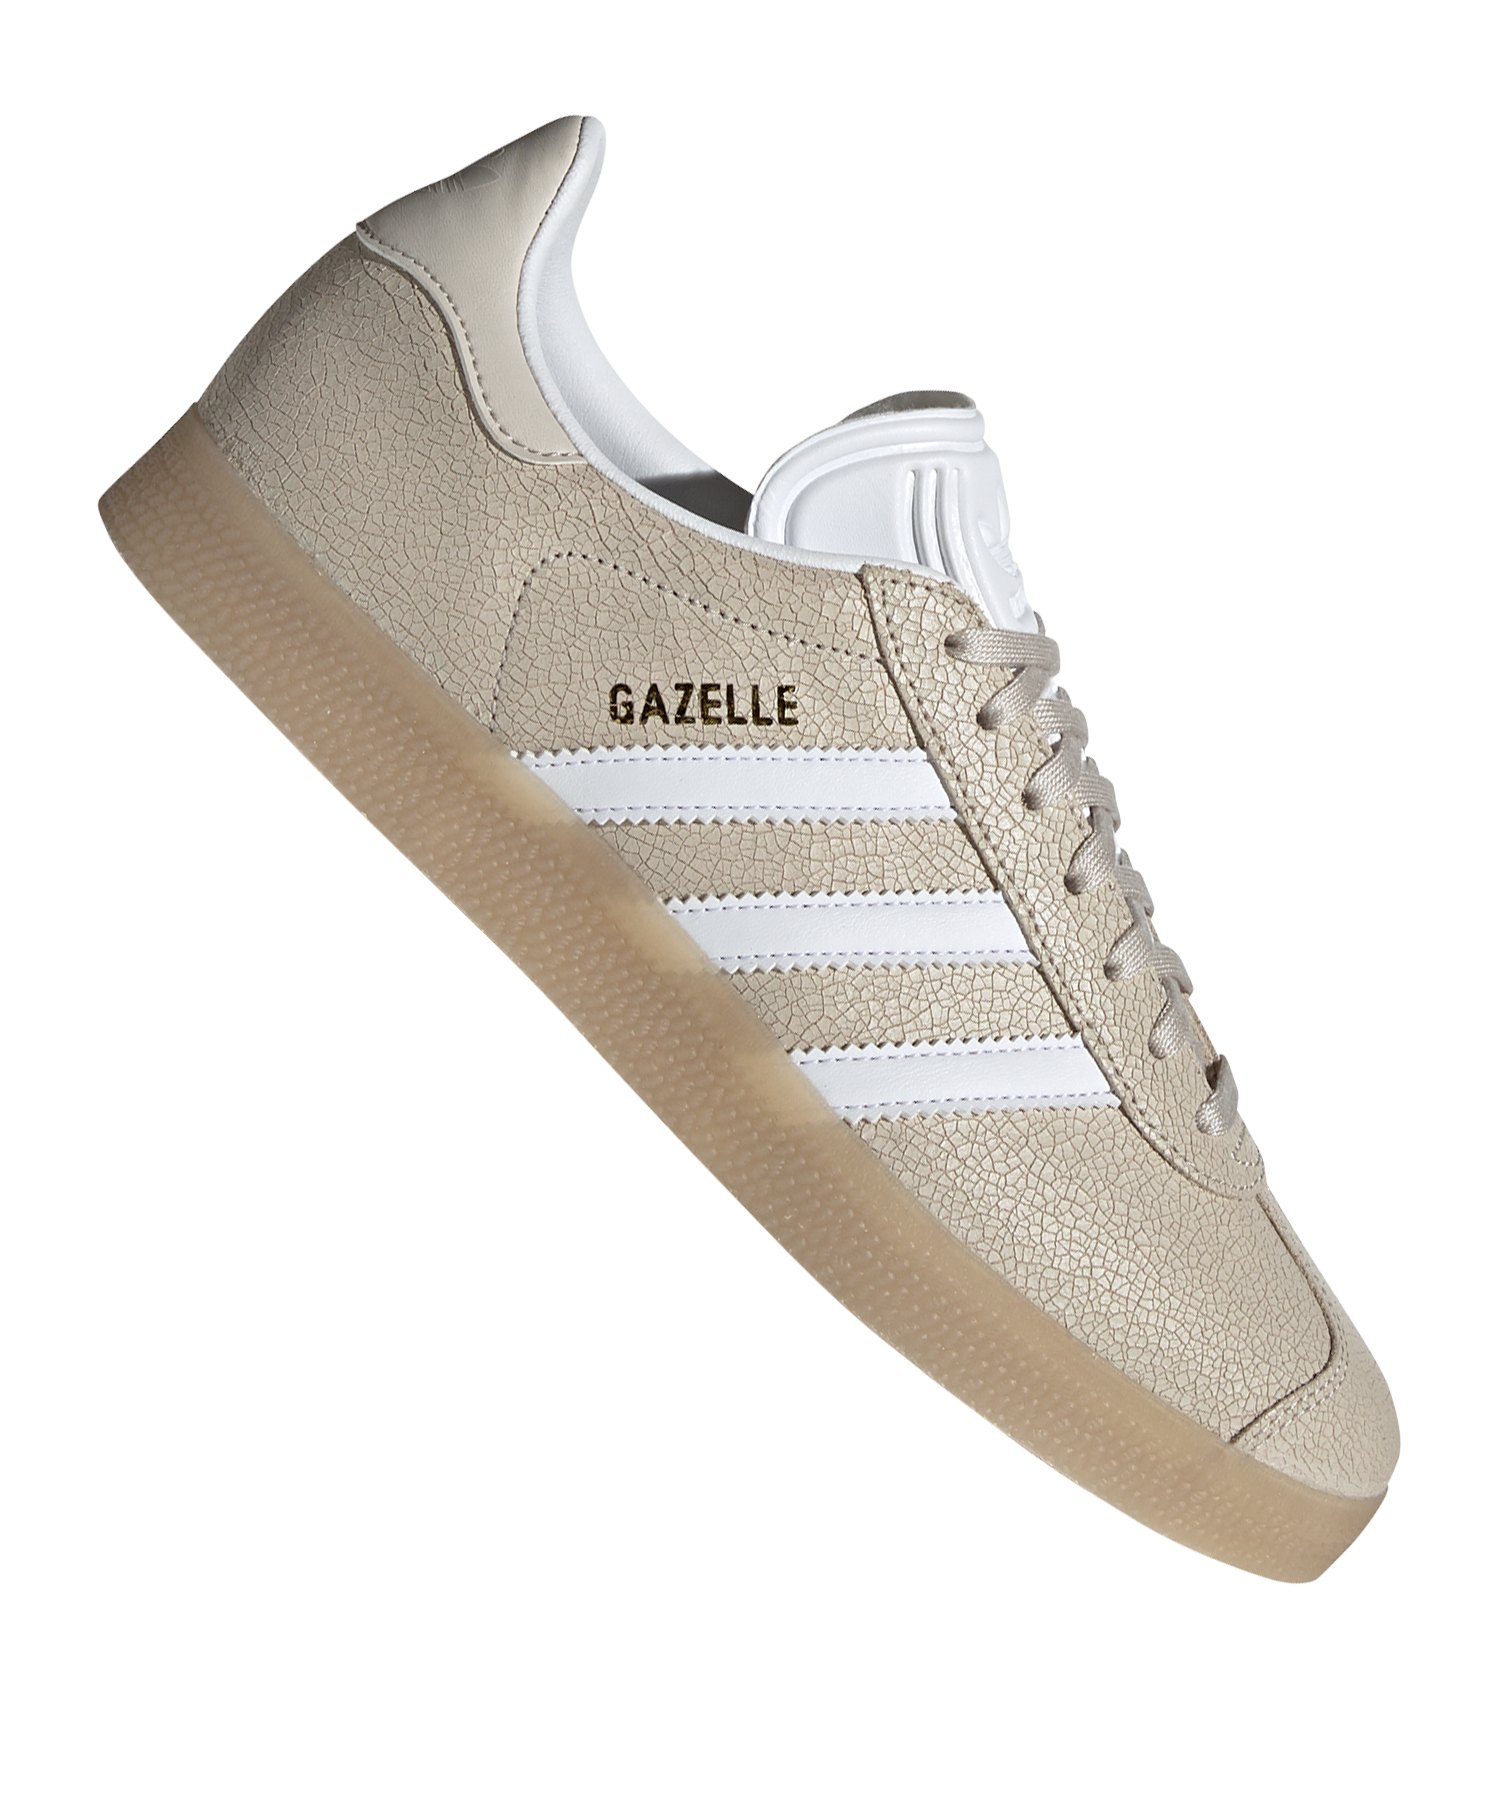 adidas Originals Gazelle Sneaker Damen Beige Weiss |Lifestyle ...